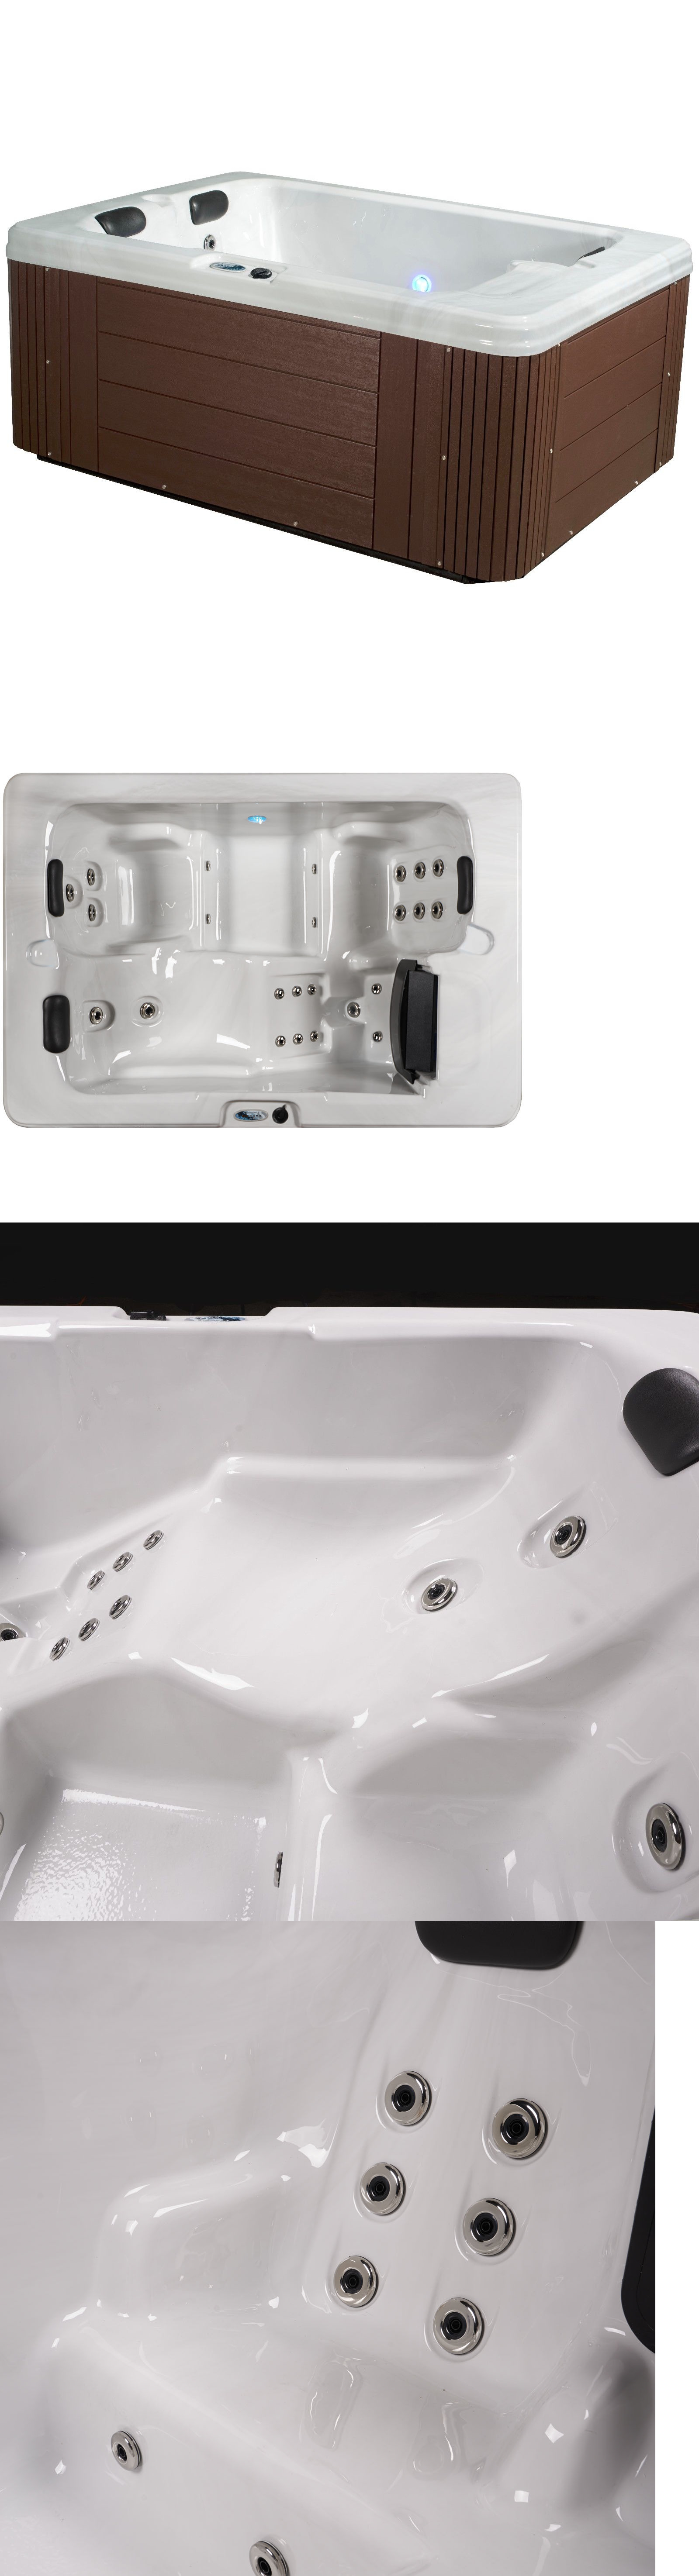 spas and hot tubs 84211 strong spas spa hot tub new overstock rh pinterest com